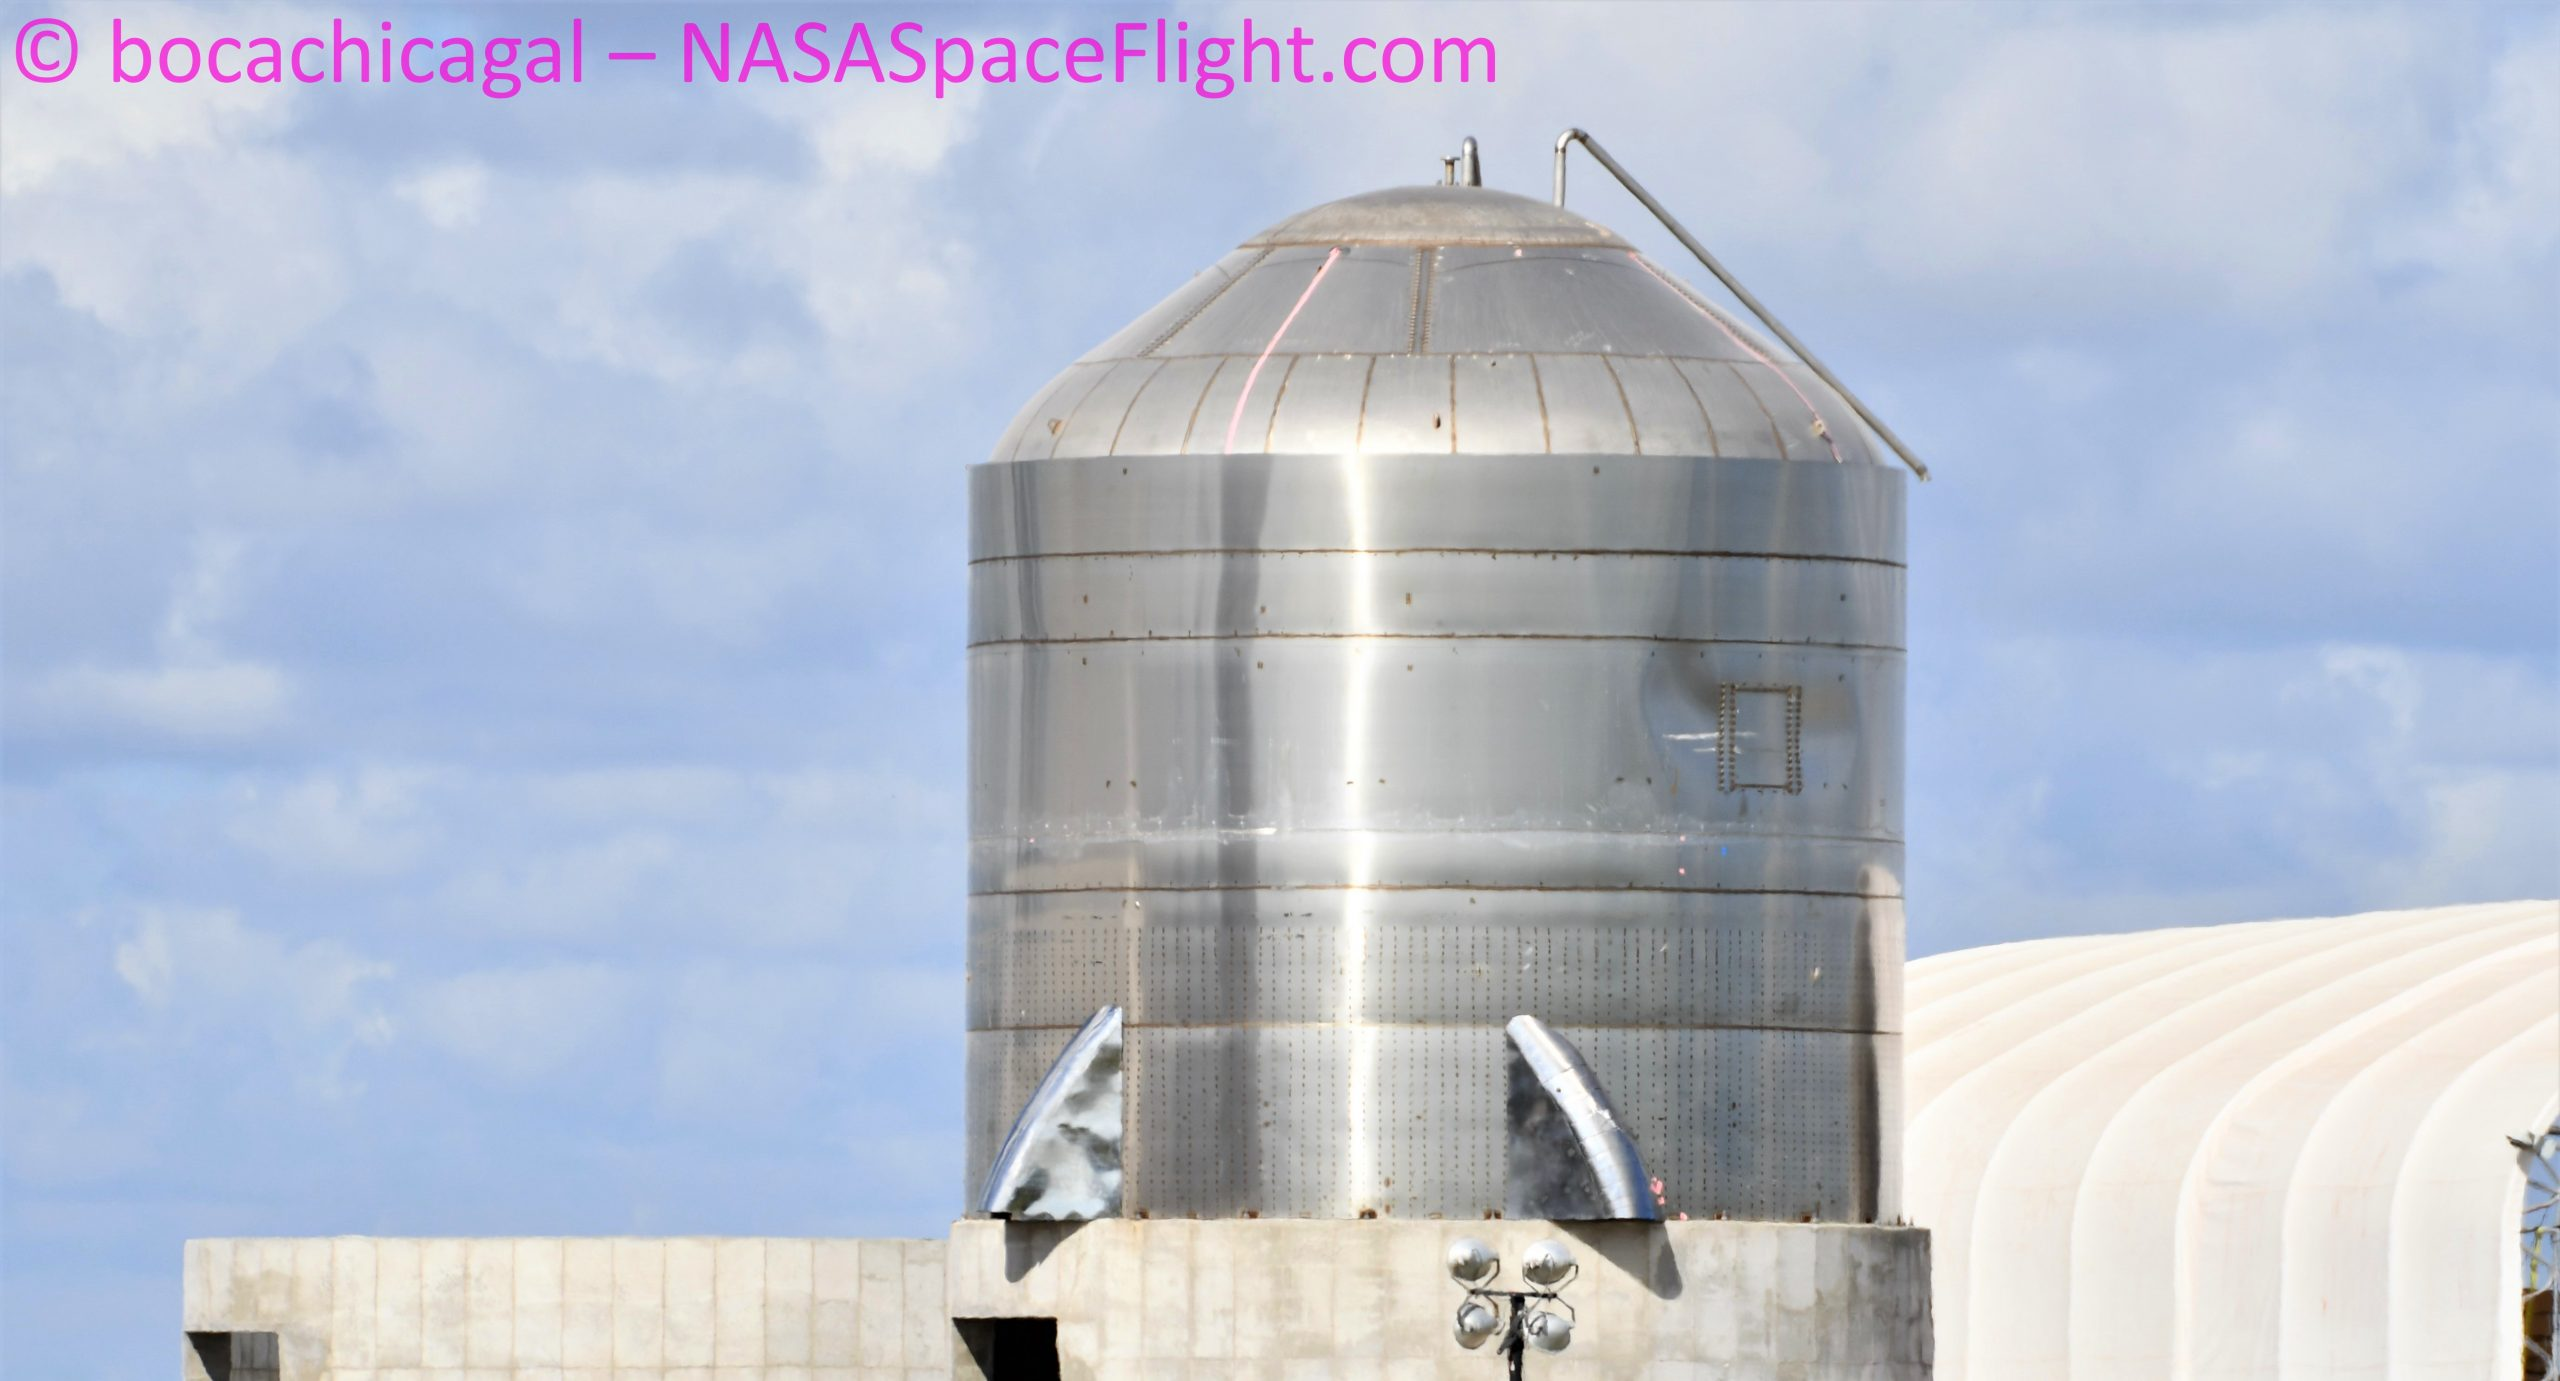 Starship Boca Chica 072320 (NASASpaceflight – bocachicagal) SN2 test tank mods 1 crop